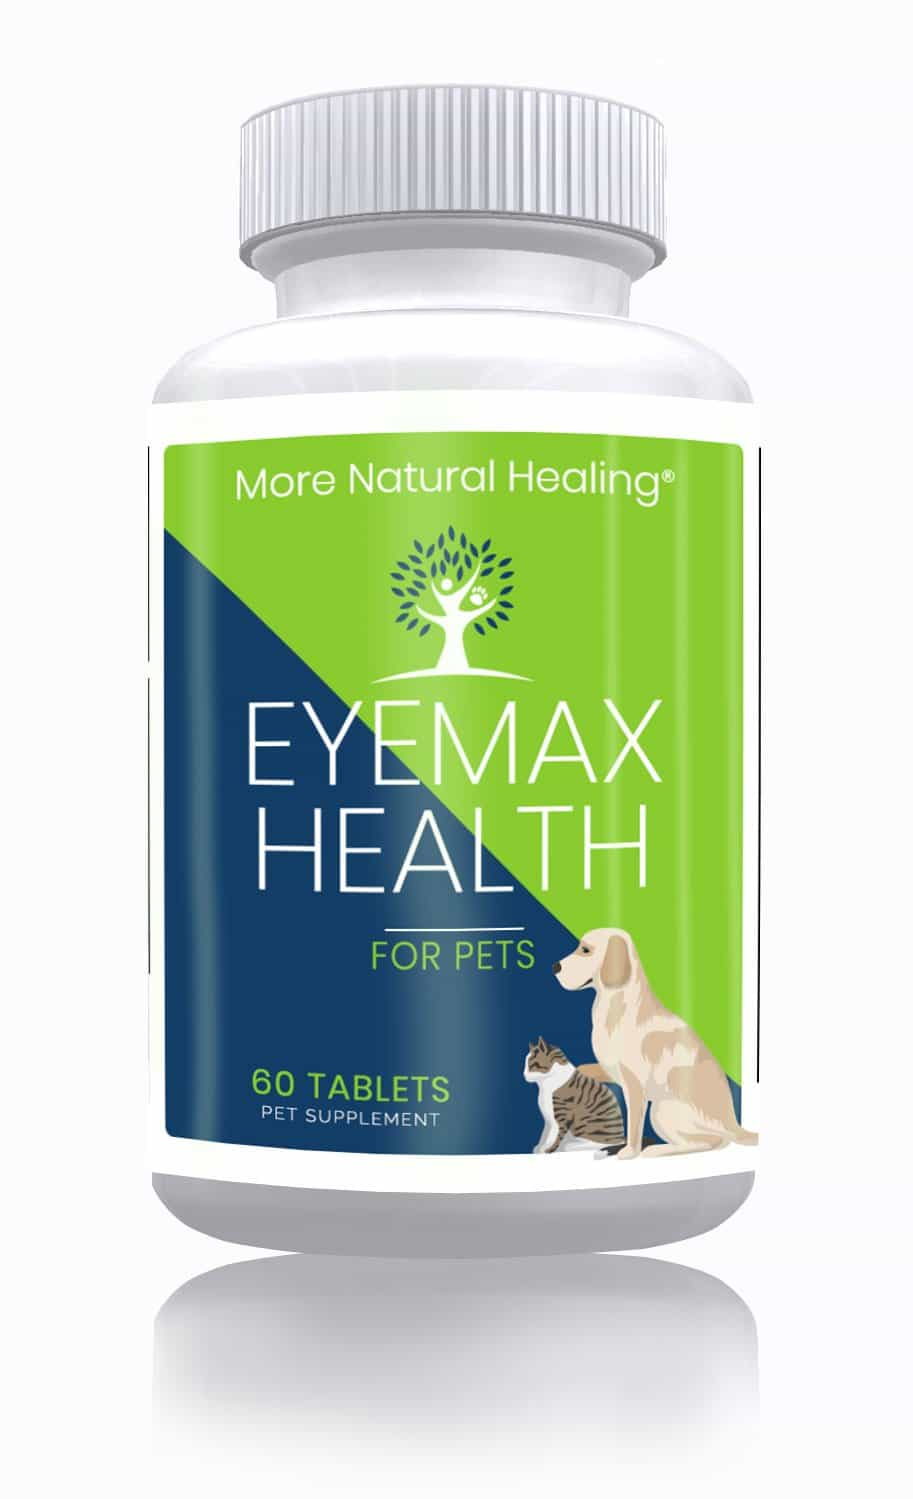 EyeMax Health for Pets Eye Support Supplement Tablets - More Natural Healing